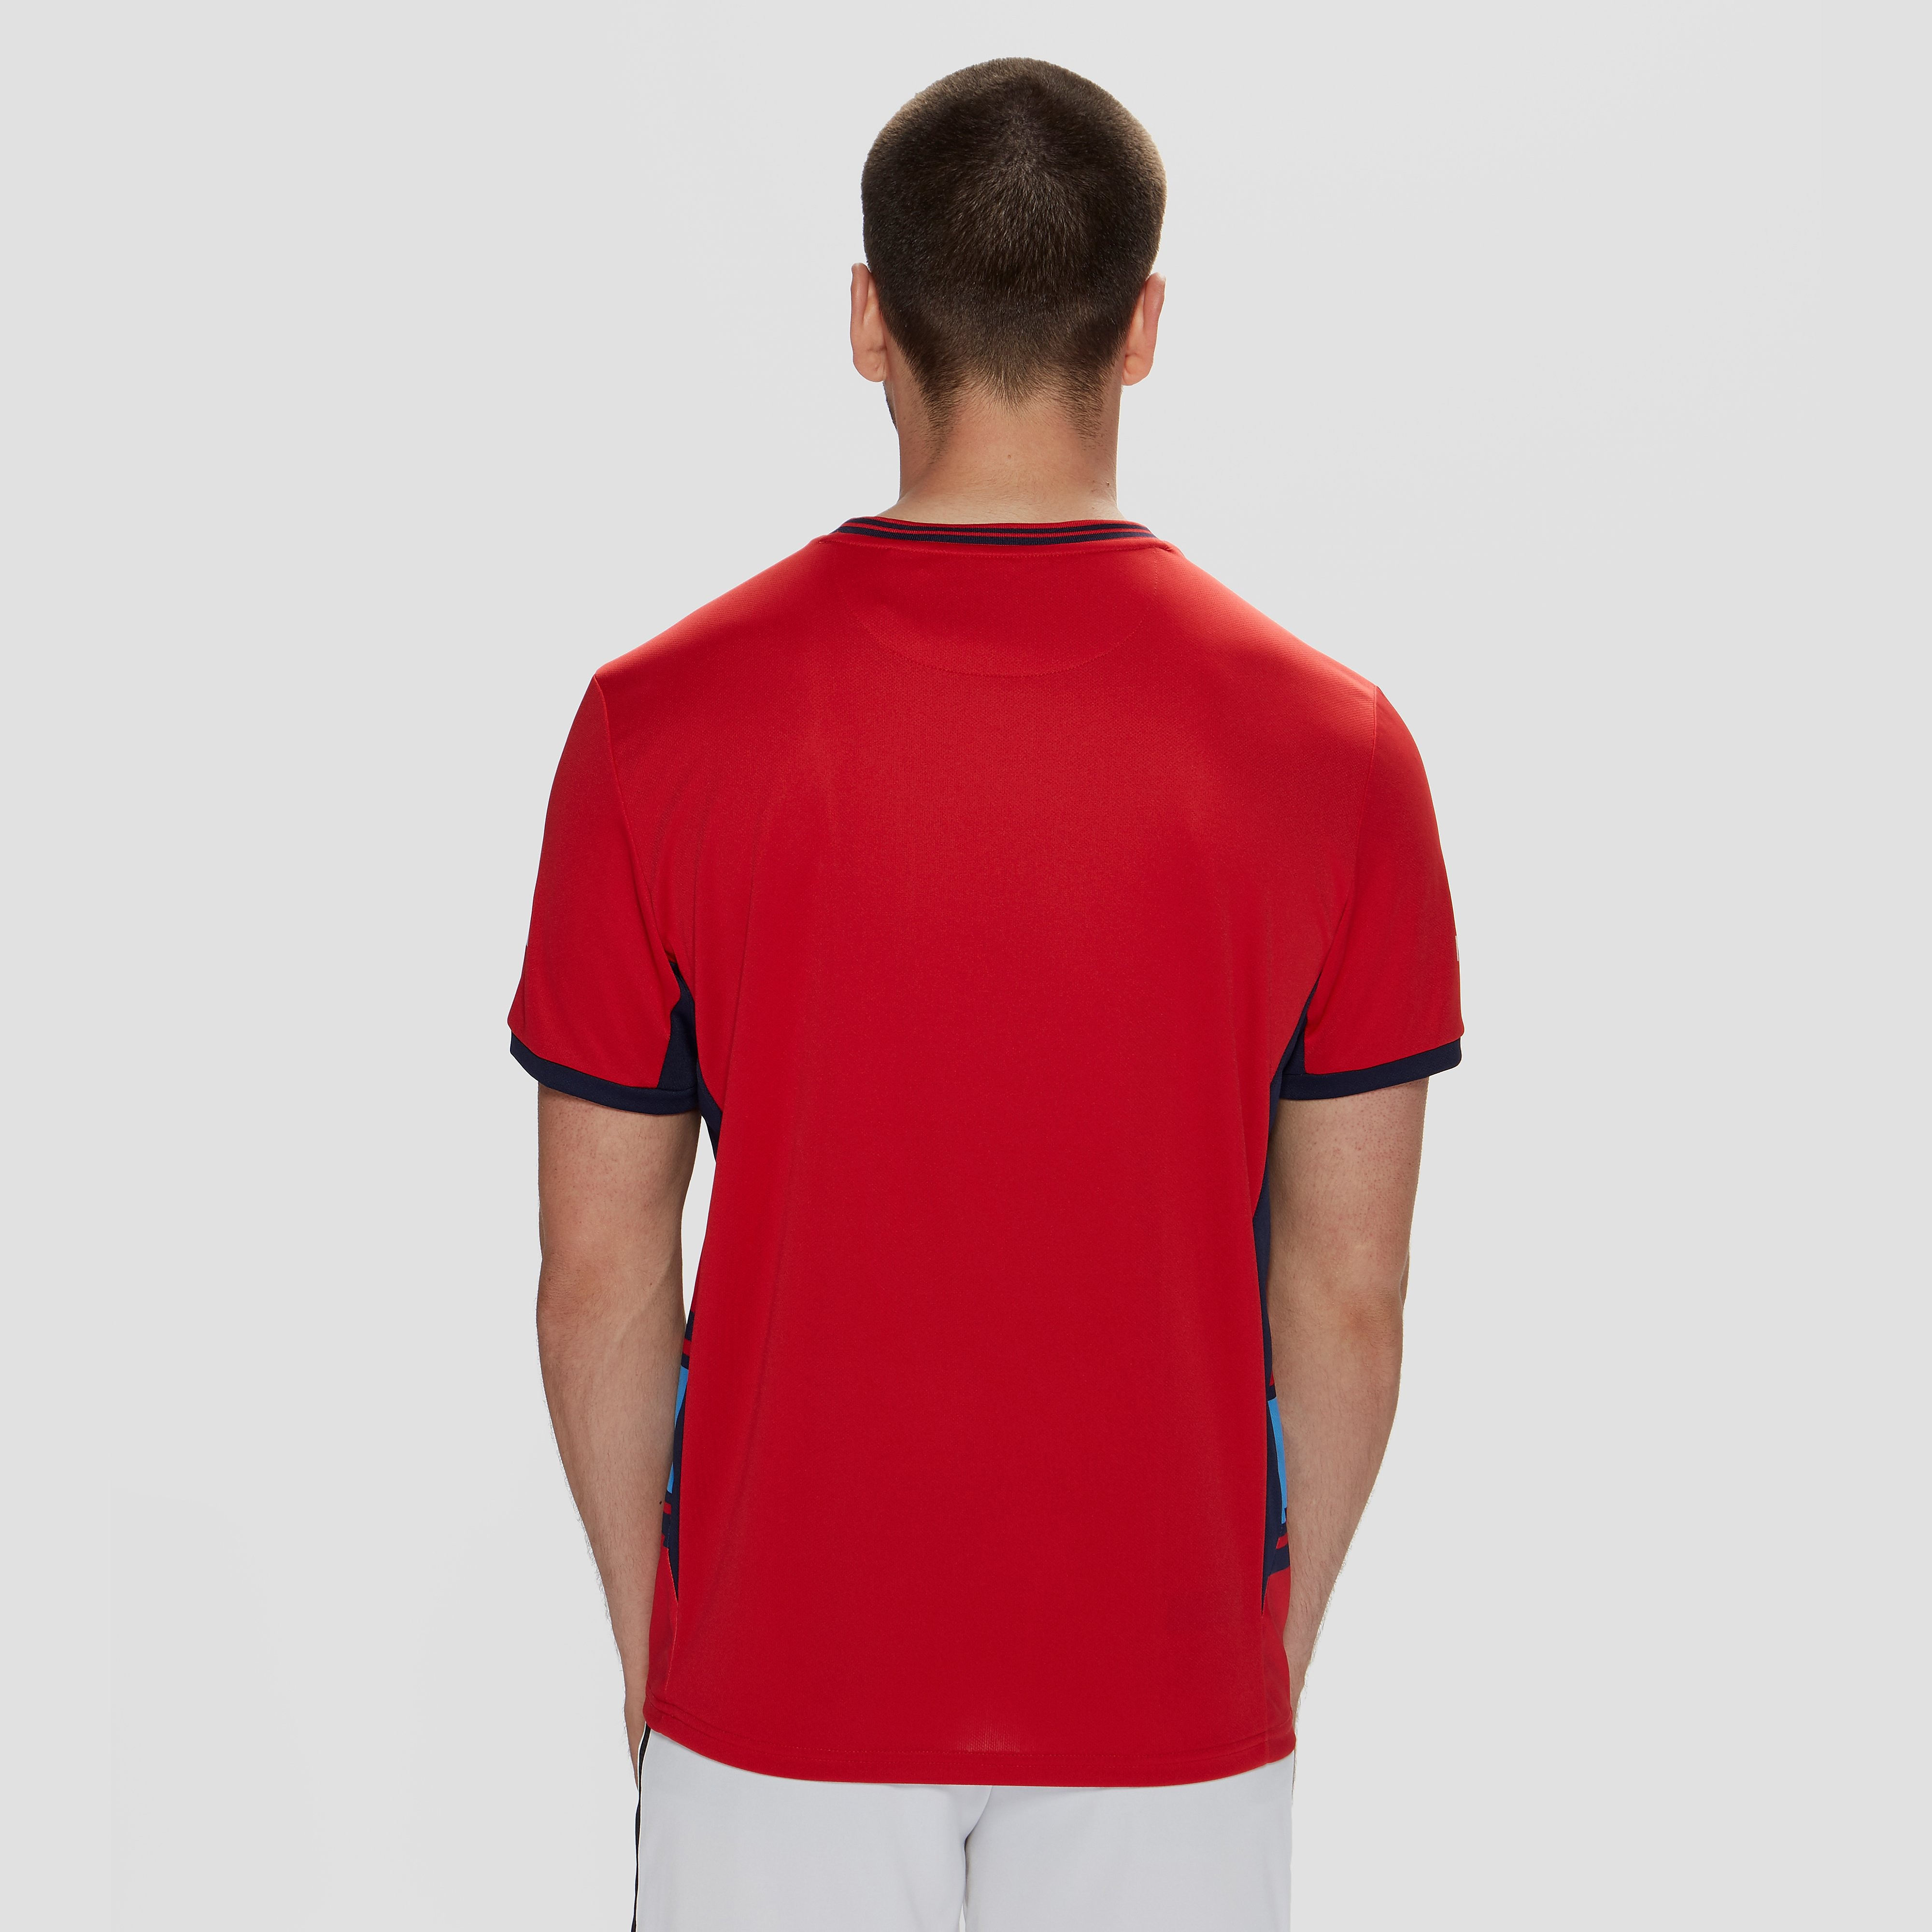 New Balance ECB T20 Men's T-Shirt